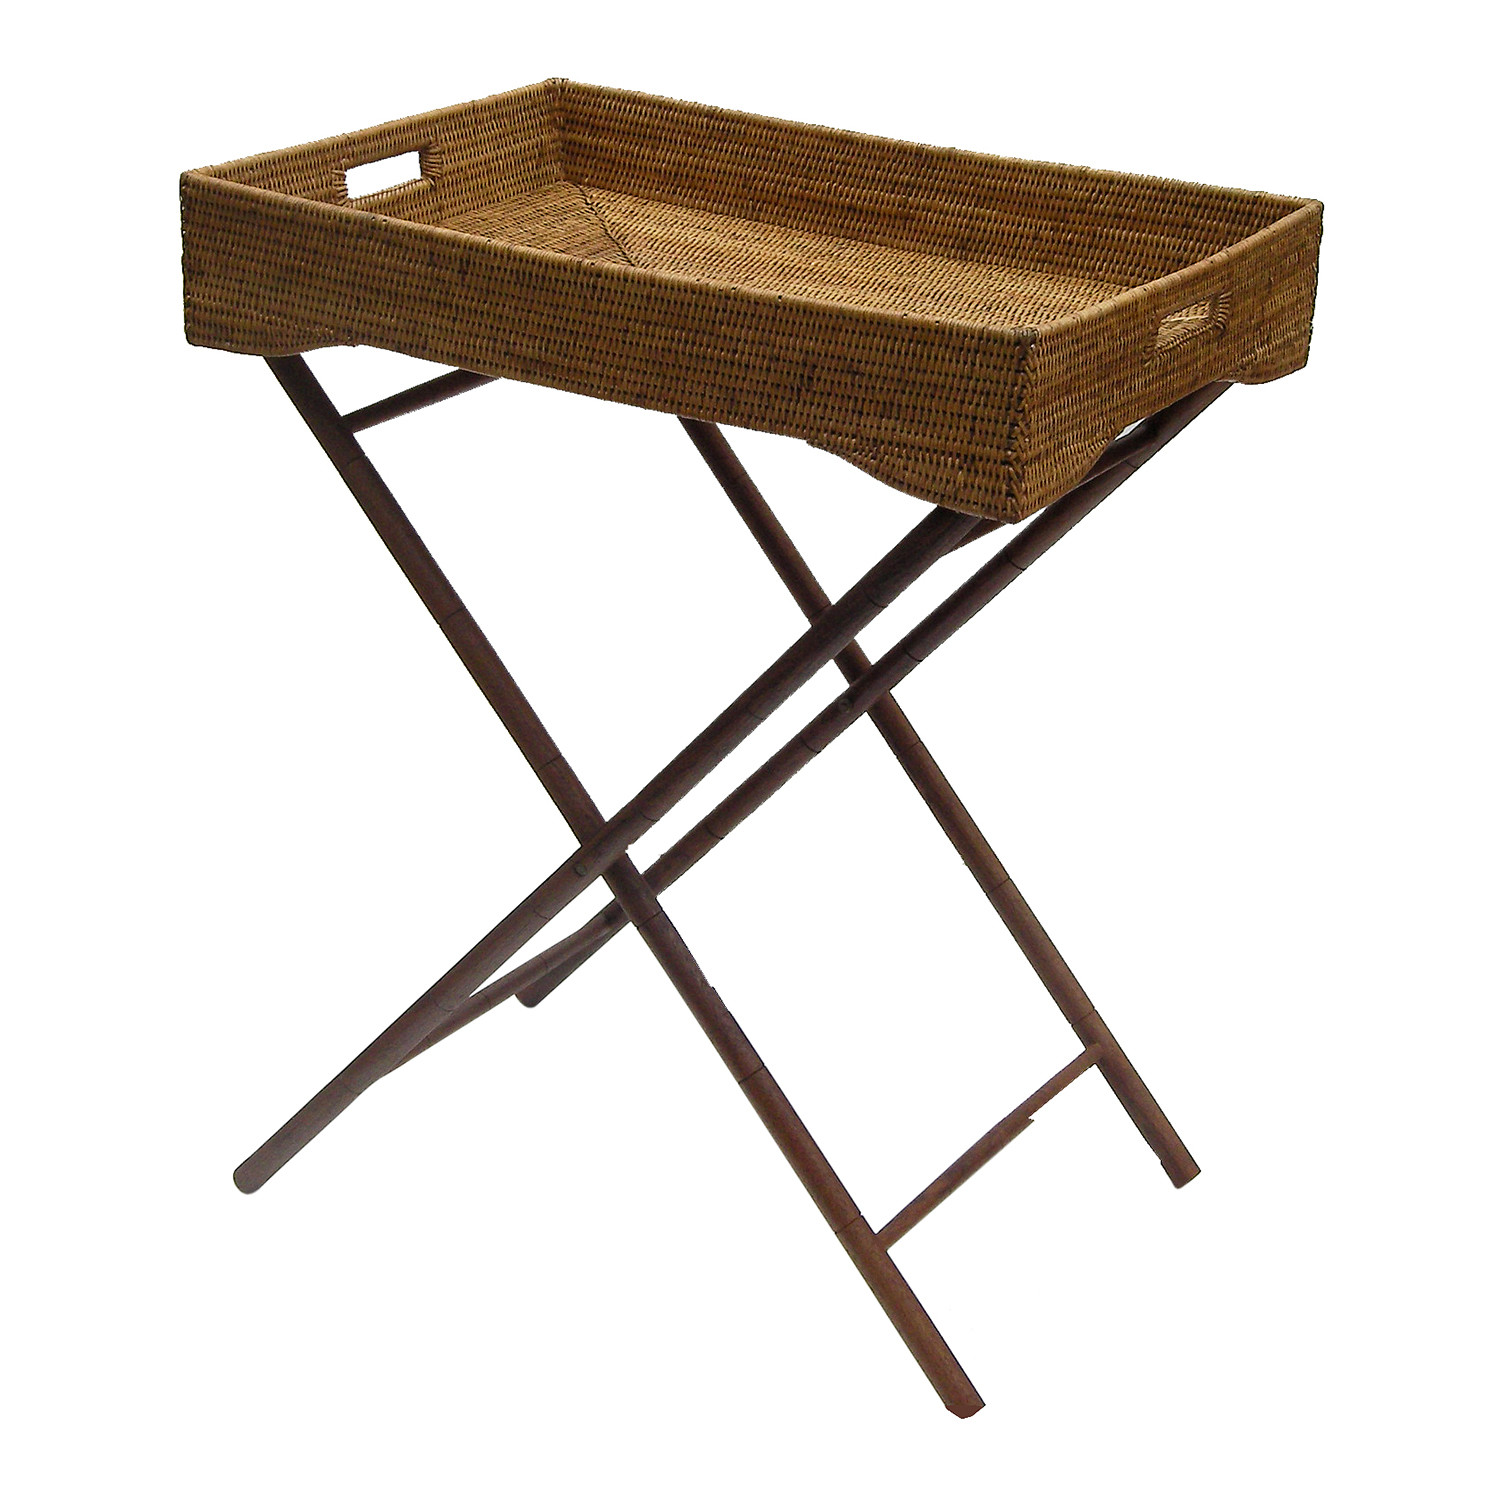 NEW-Butler-Tray-with-Wooden-Legs-Capeview-Interiors-Side-End-Tables